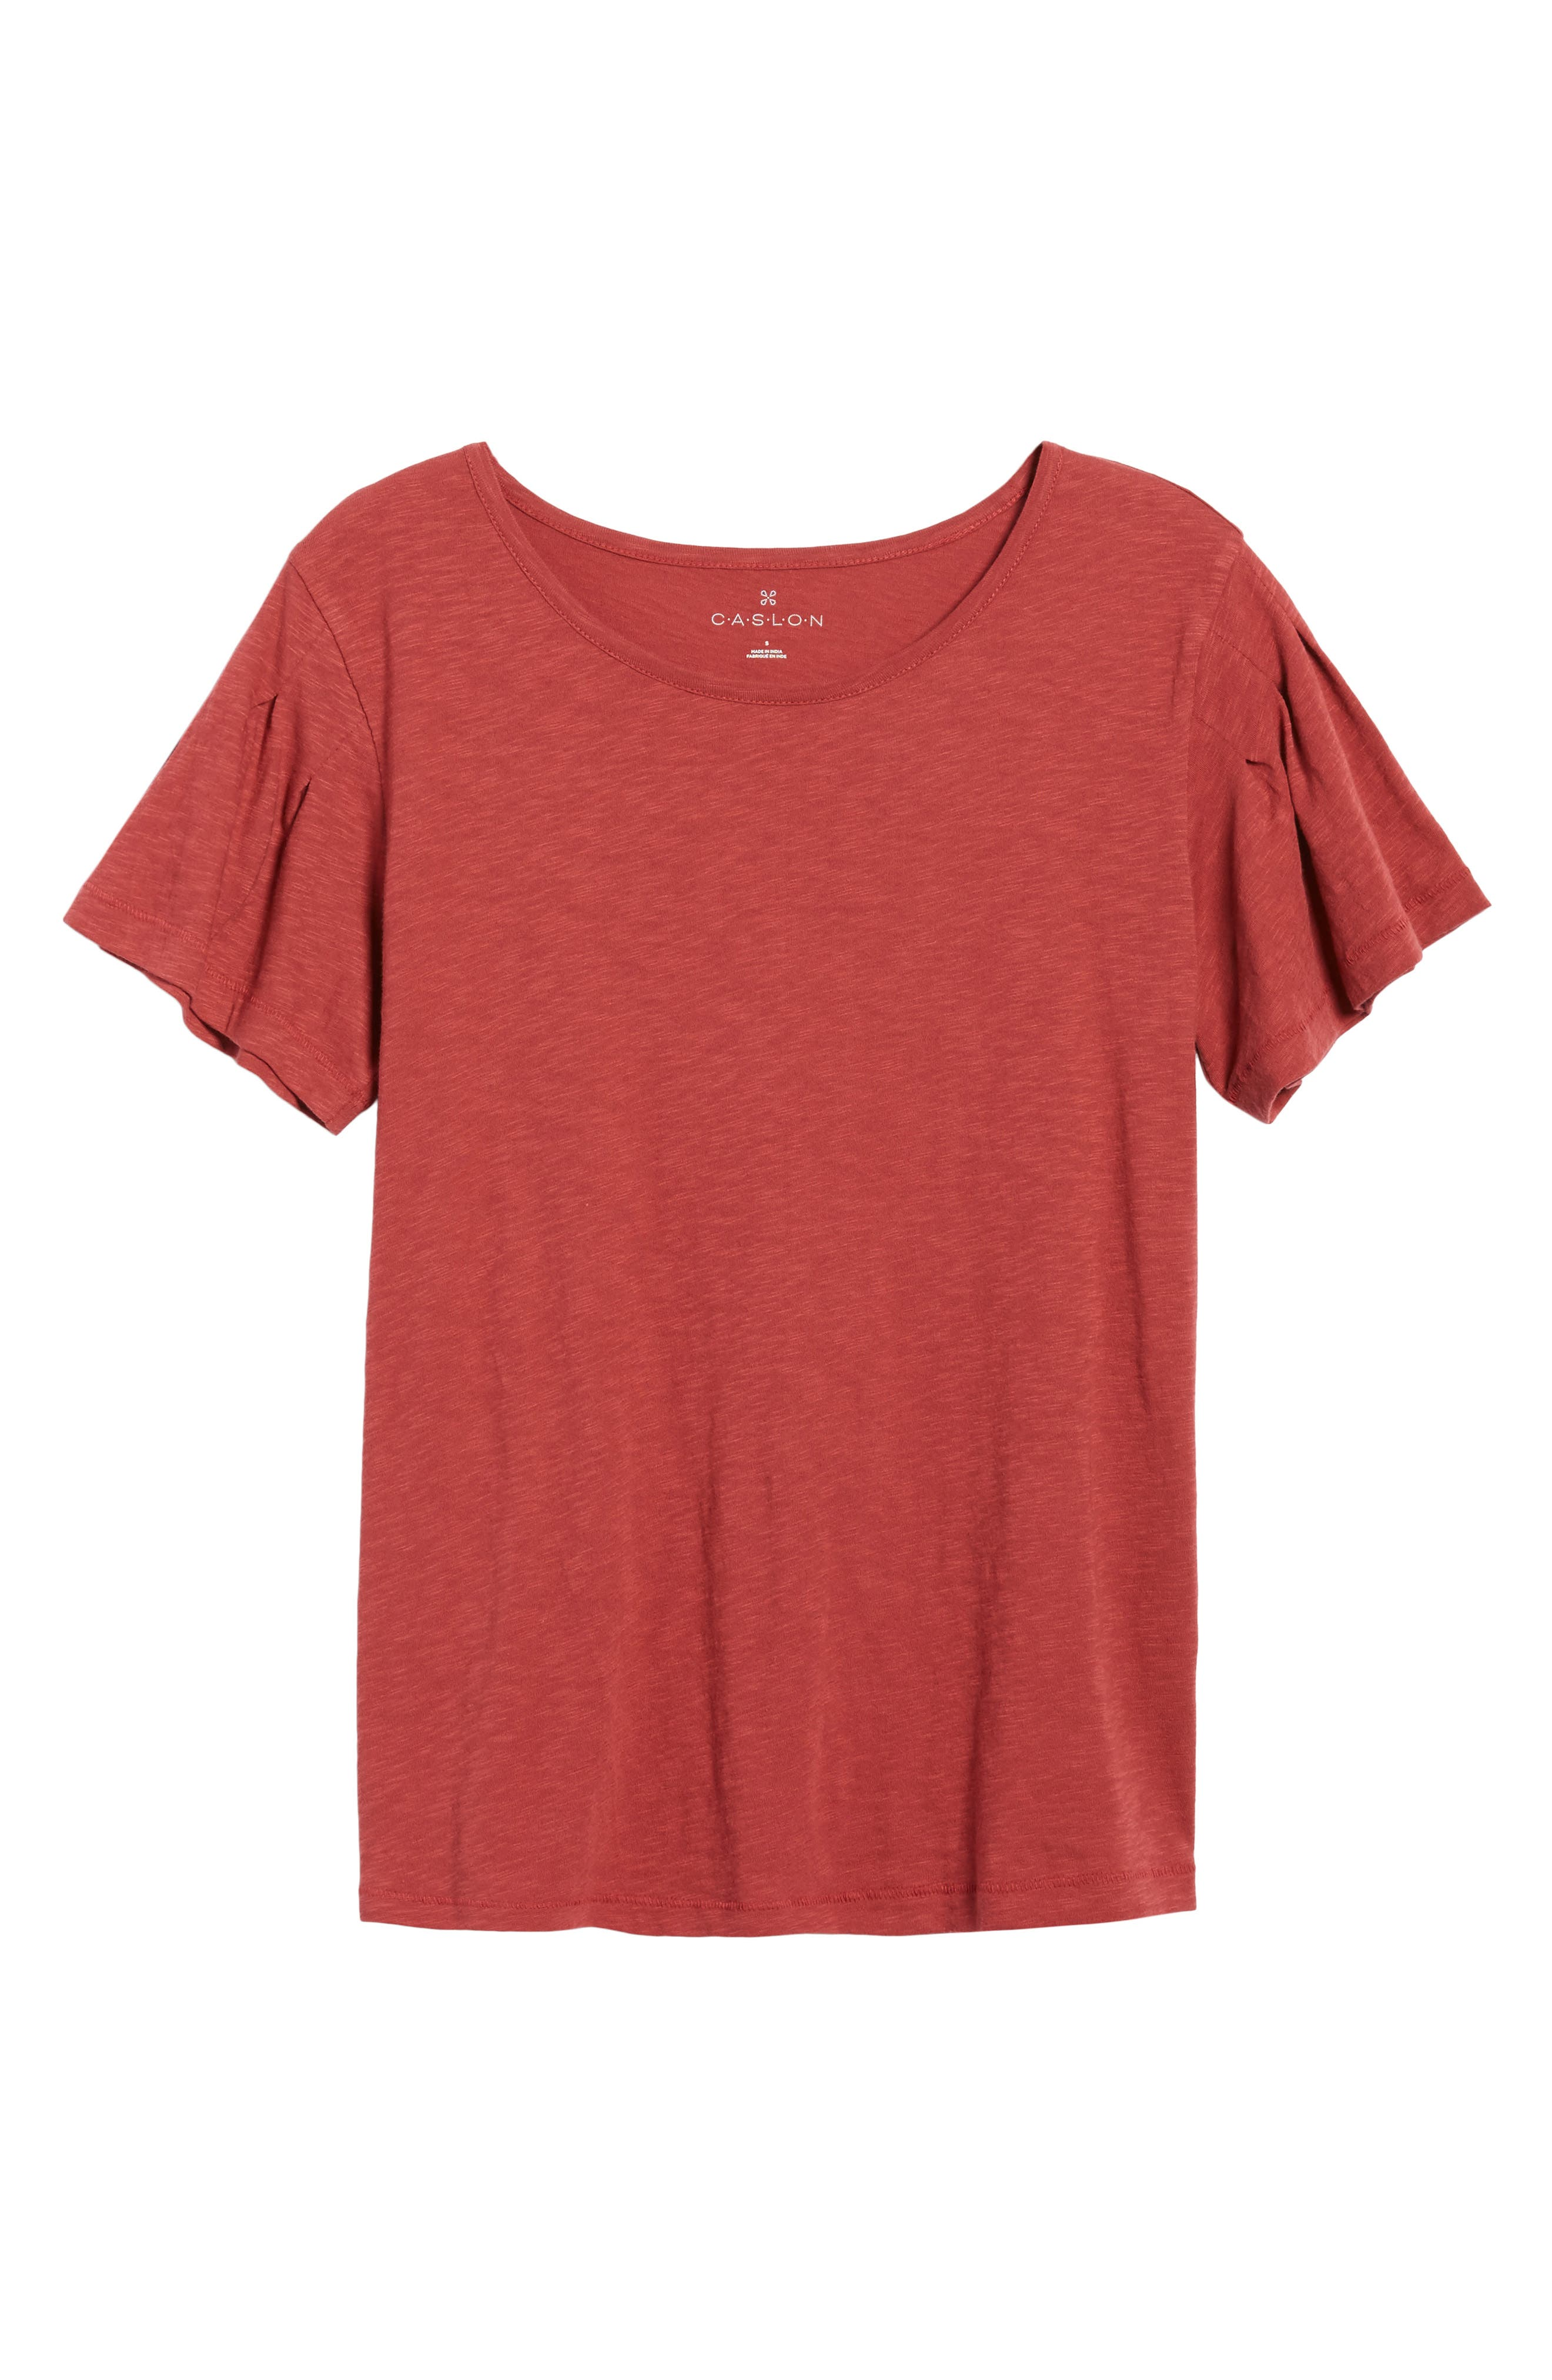 Pleat Sleeve Cotton Tee,                             Alternate thumbnail 6, color,                             Red Earth